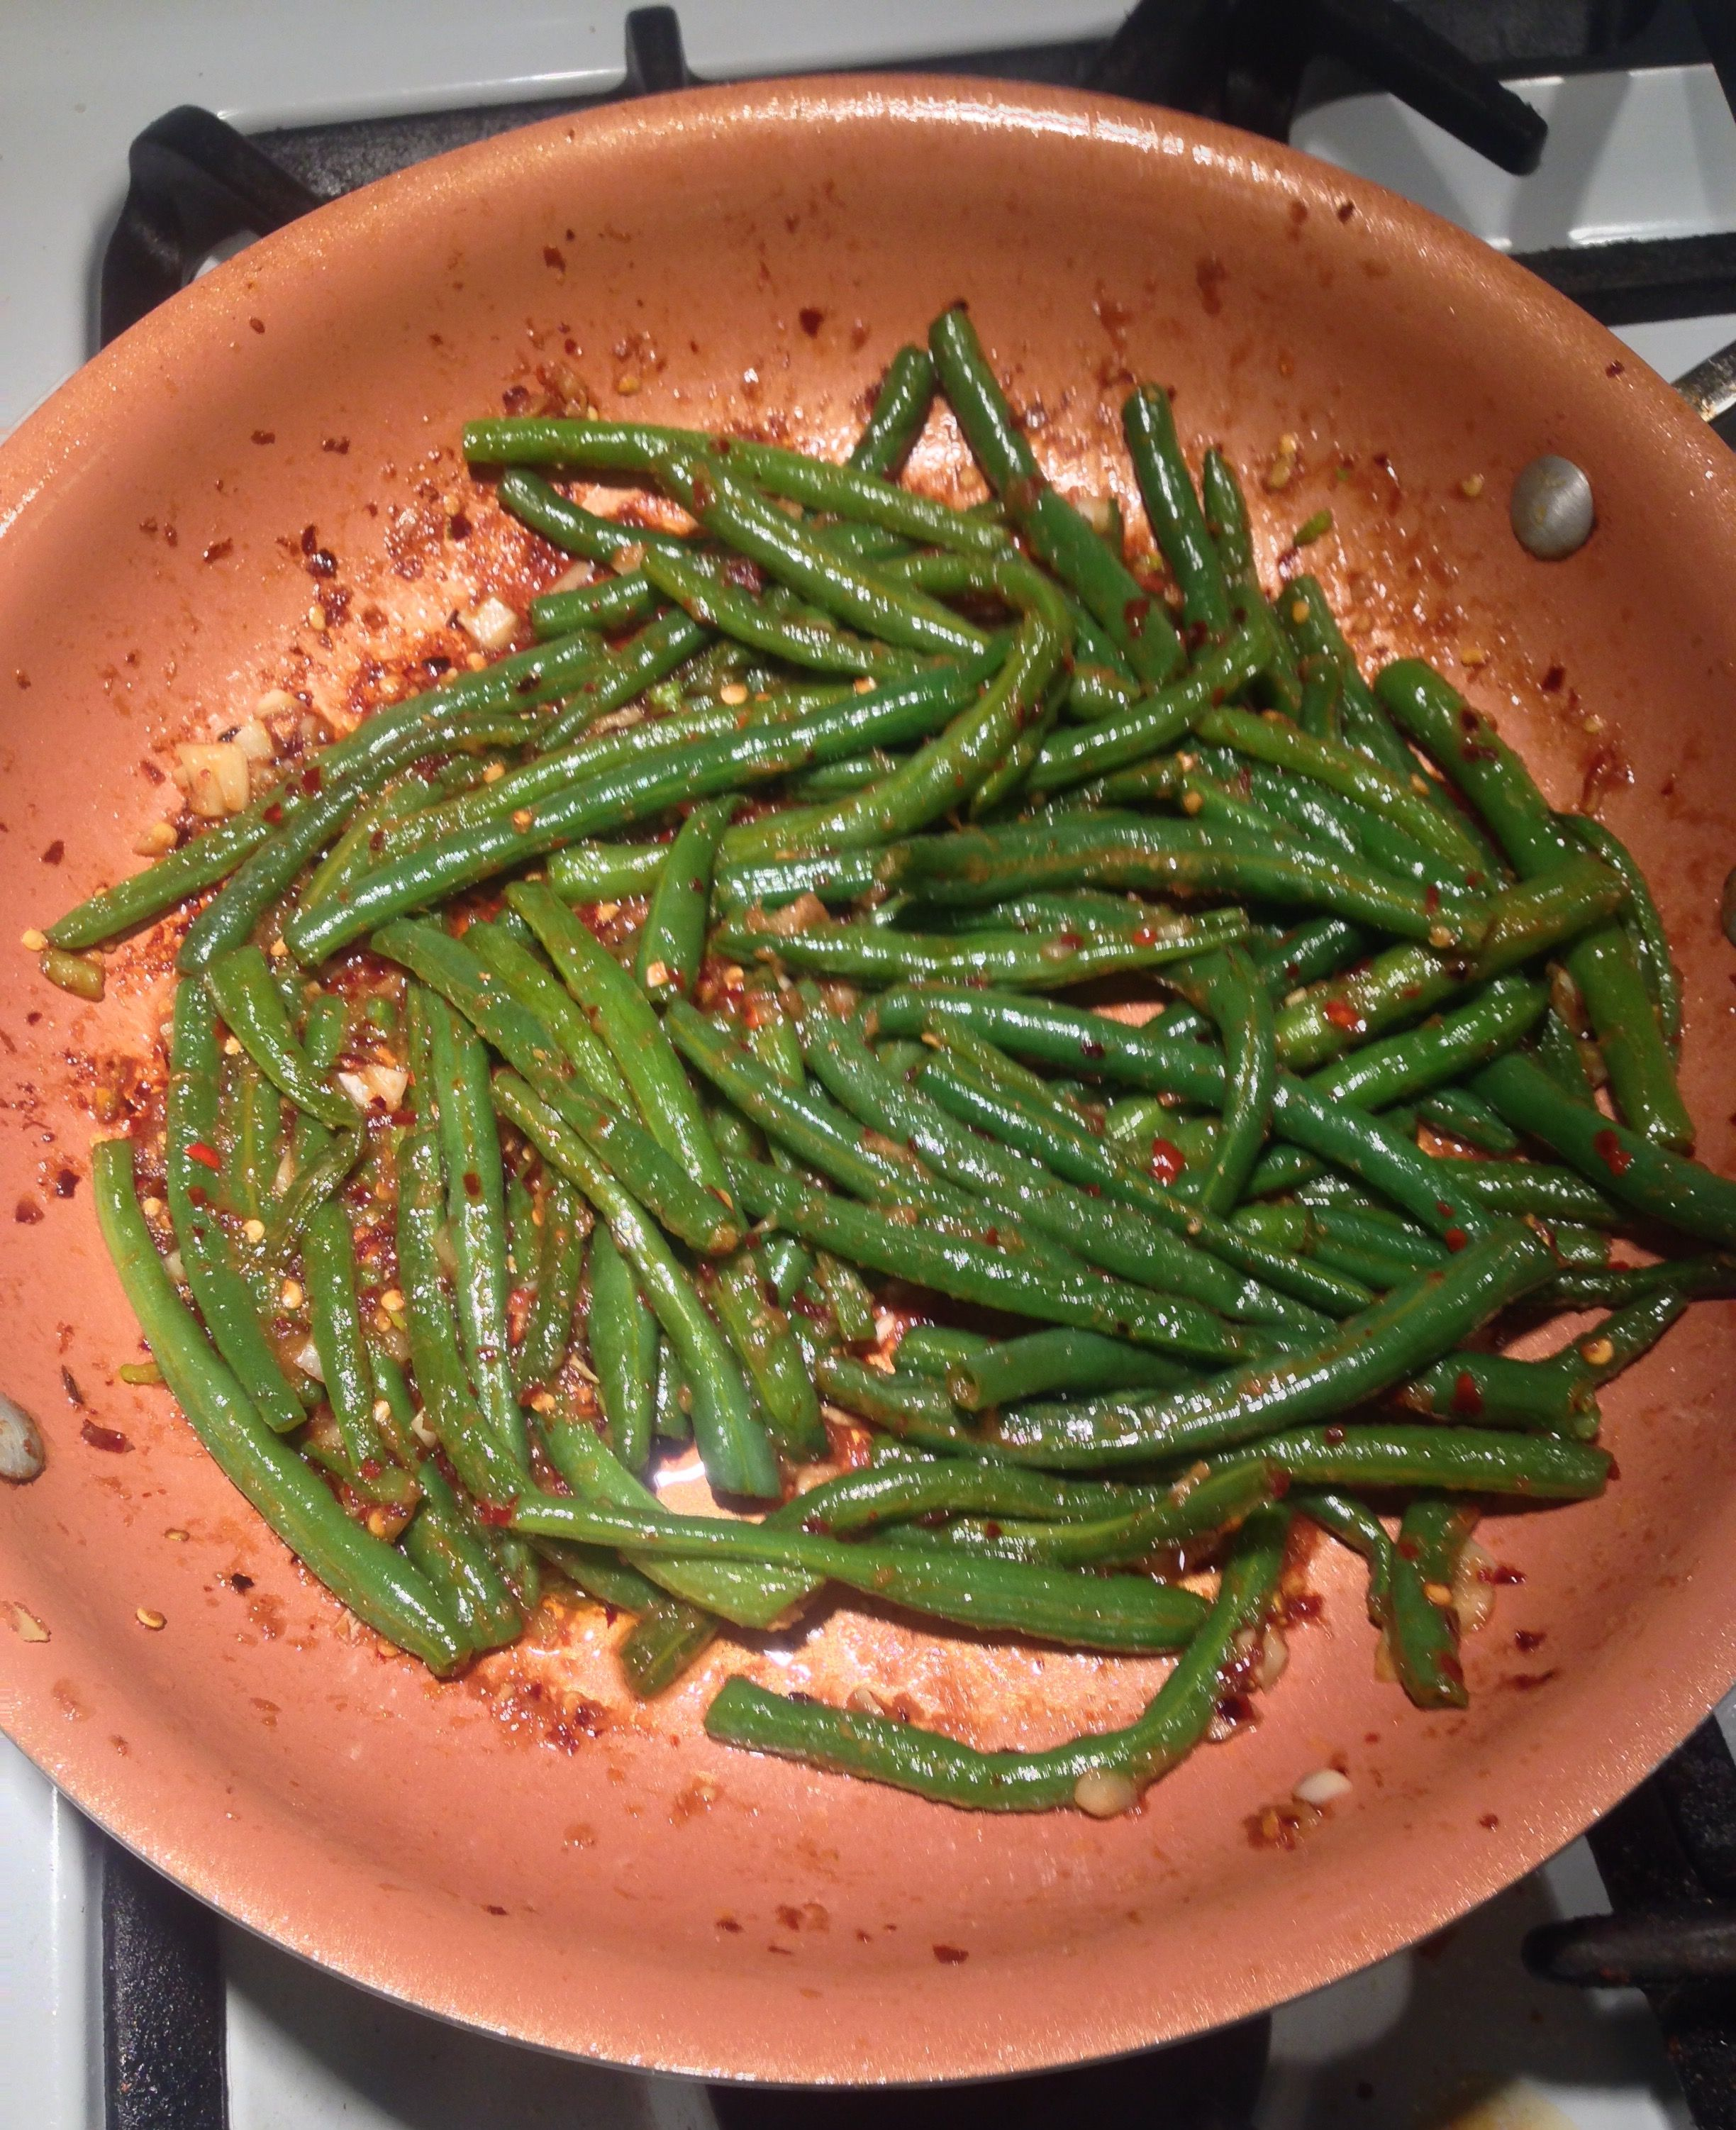 Pf Chang S Spicy Green Beans Recipe Food Com Recipe Green Bean Recipes Spicy Green Bean Recipes Pf Changs Spicy Green Beans Recipe